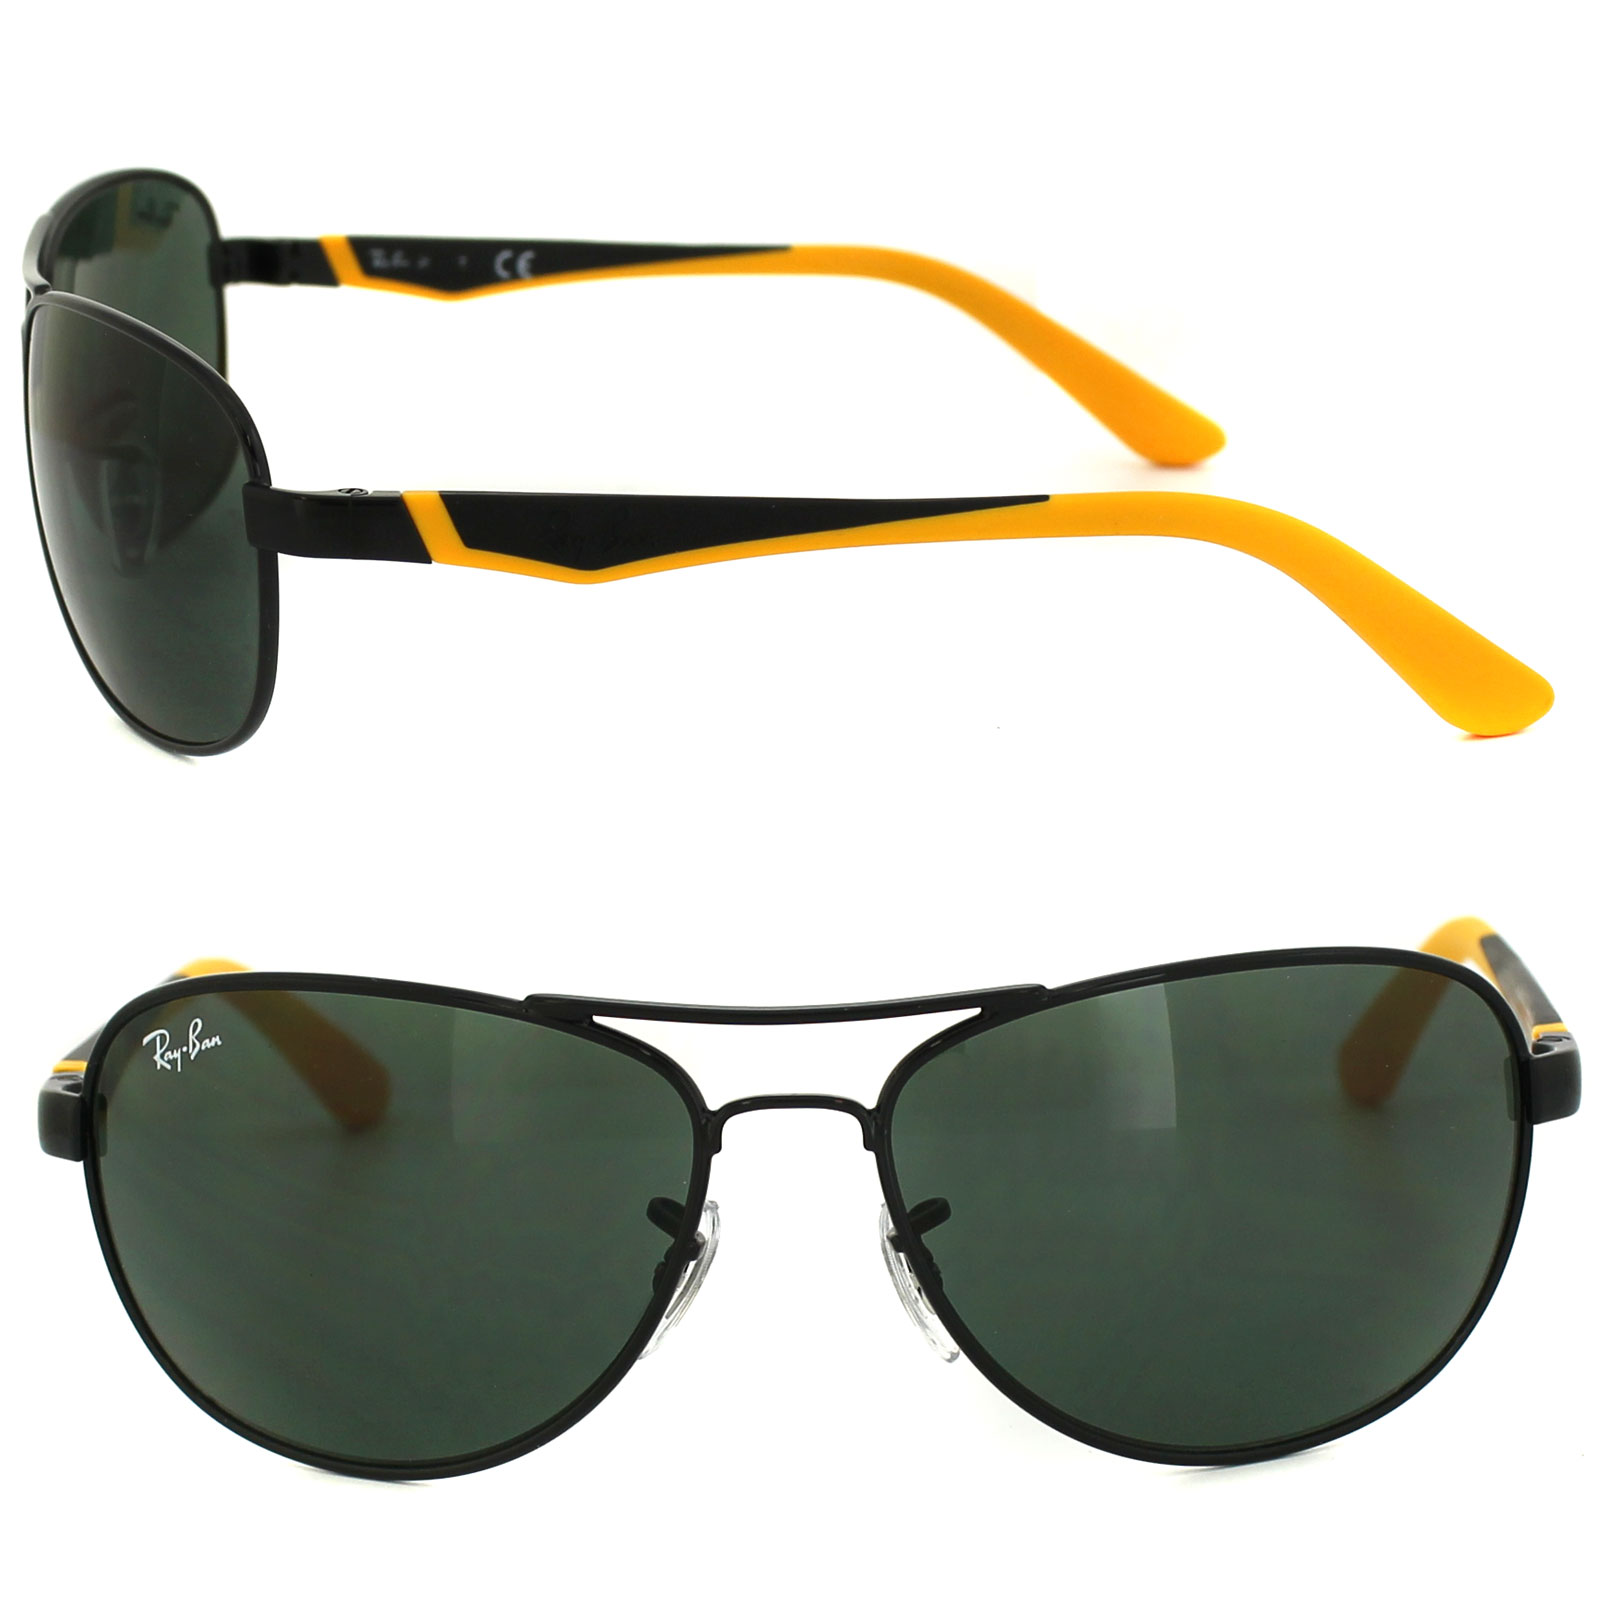 ac8aea689a Sentinel Ray-Ban Junior Sunglasses 9534 220 71 Shiny Black   Yellow Green